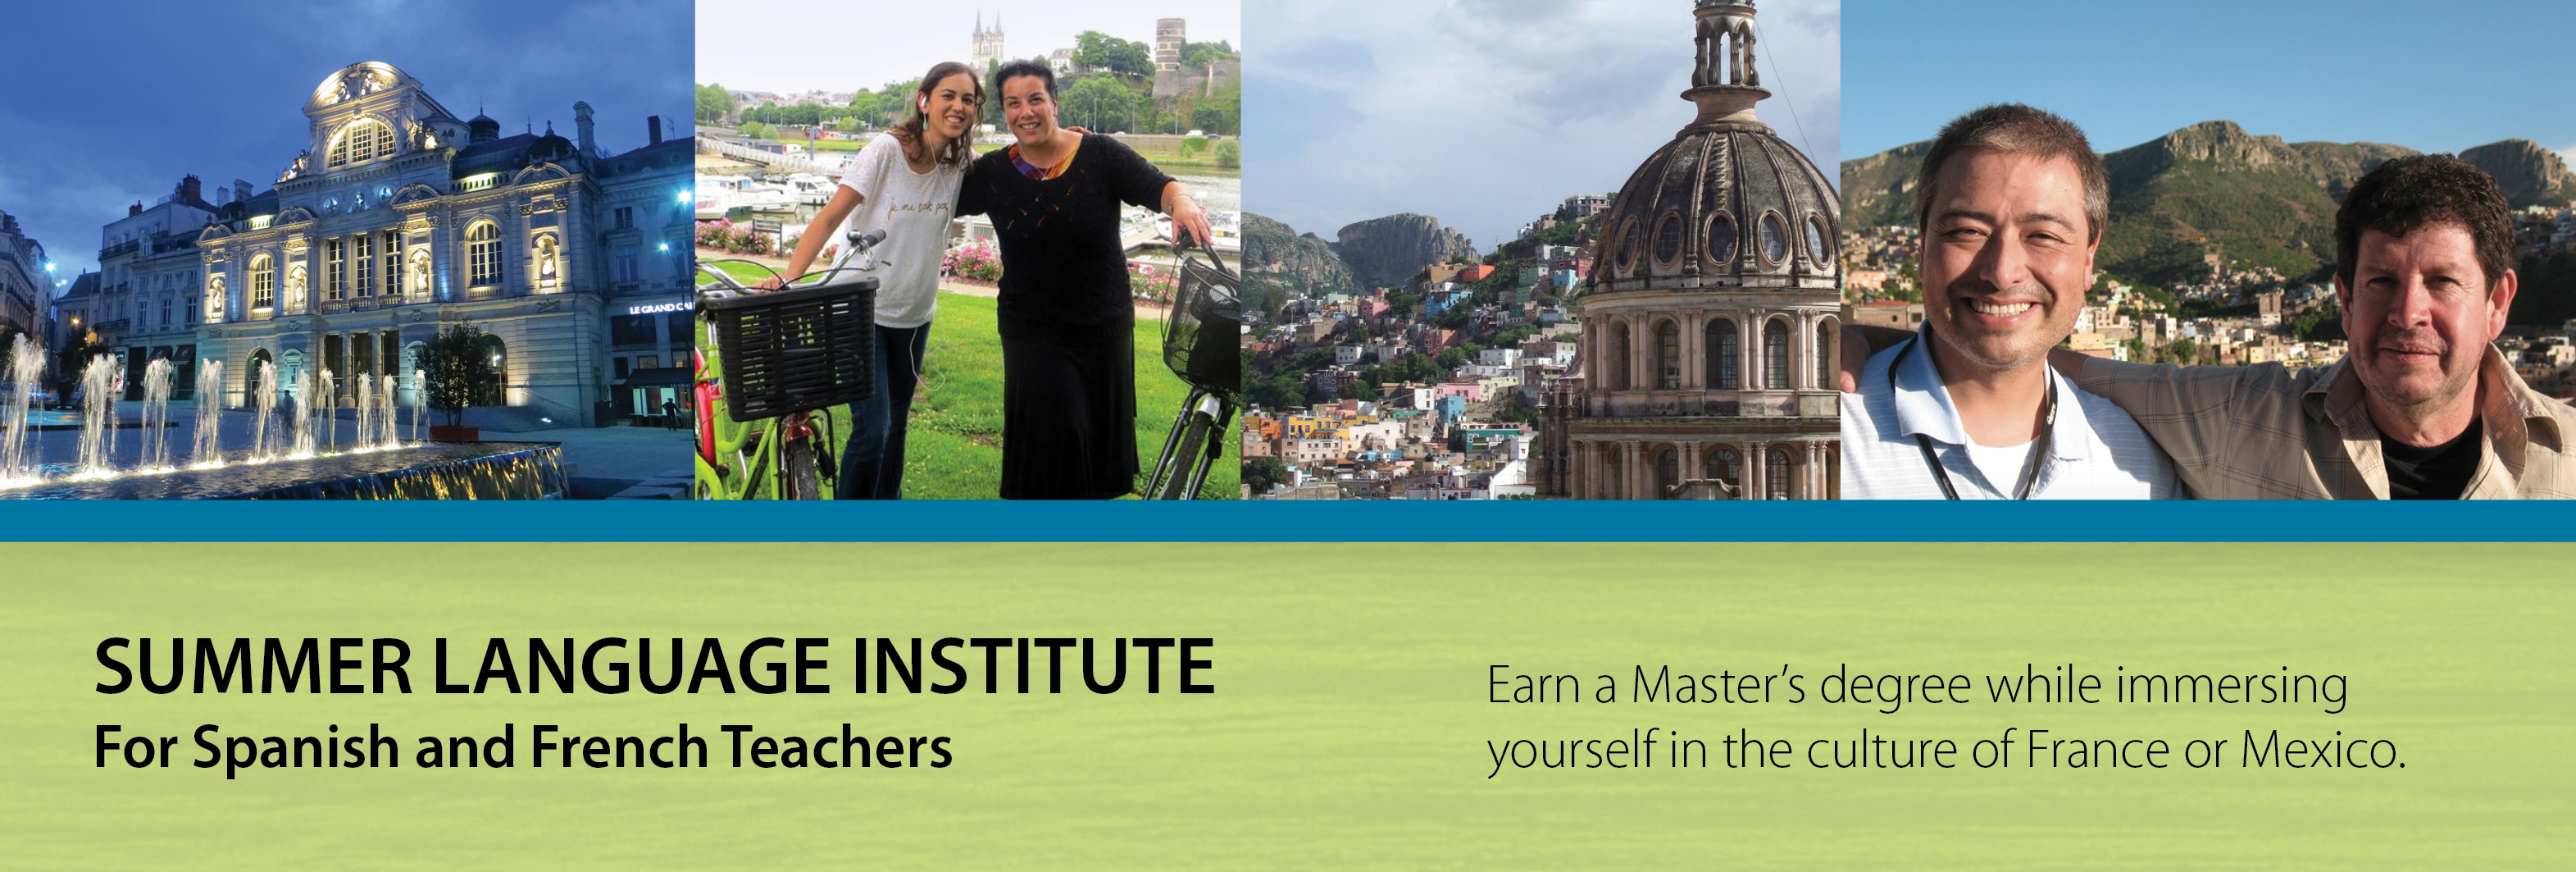 Summer Language Institute for French and Spanish Teachers